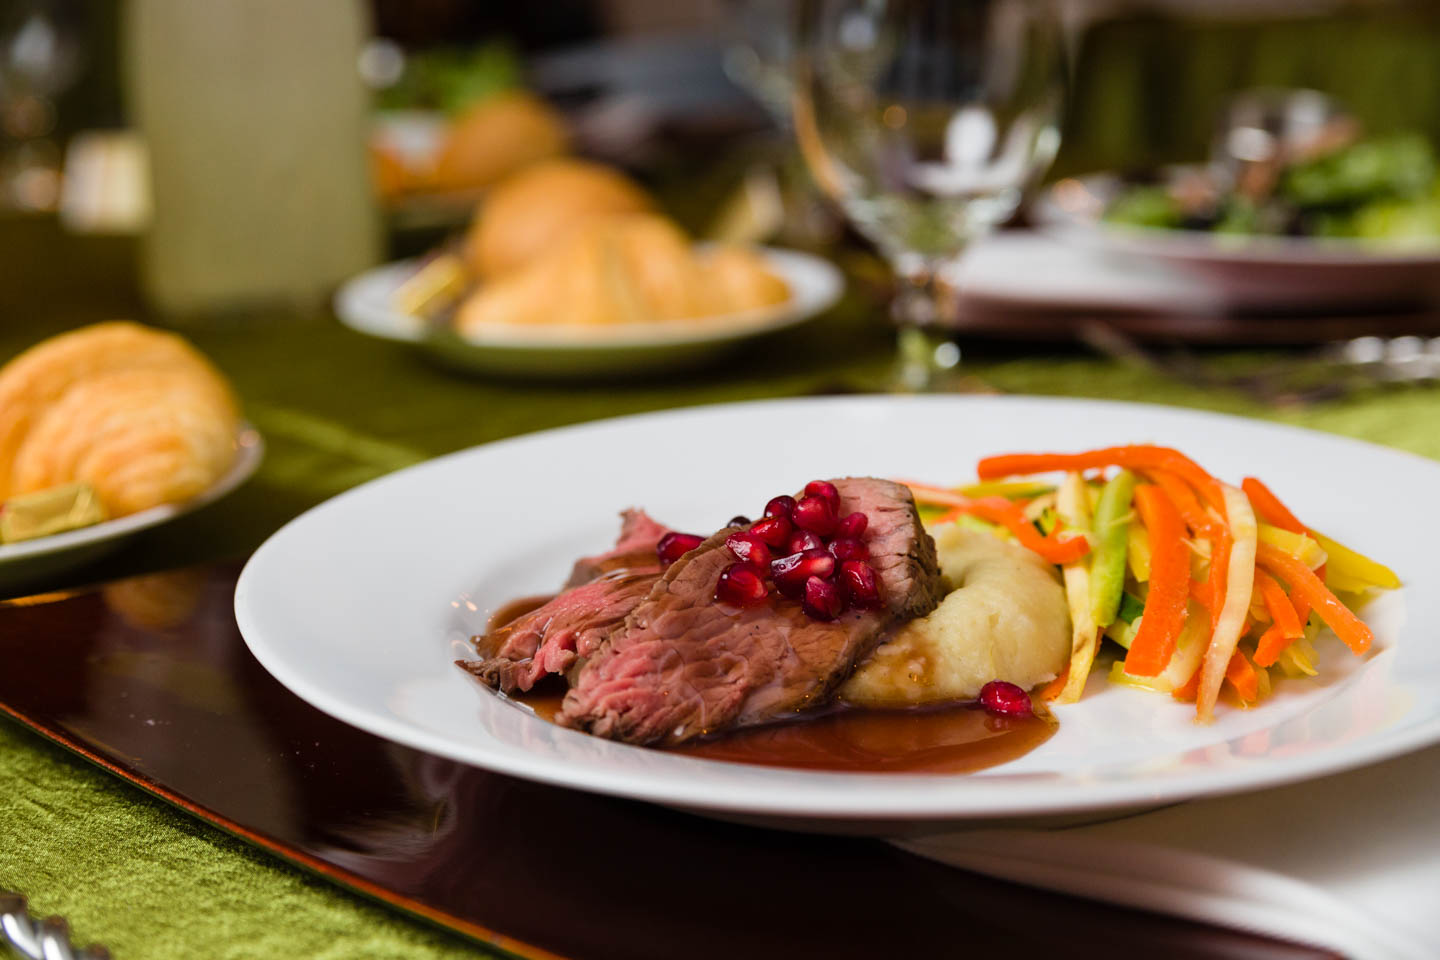 Roast beef with a pomegranate glace